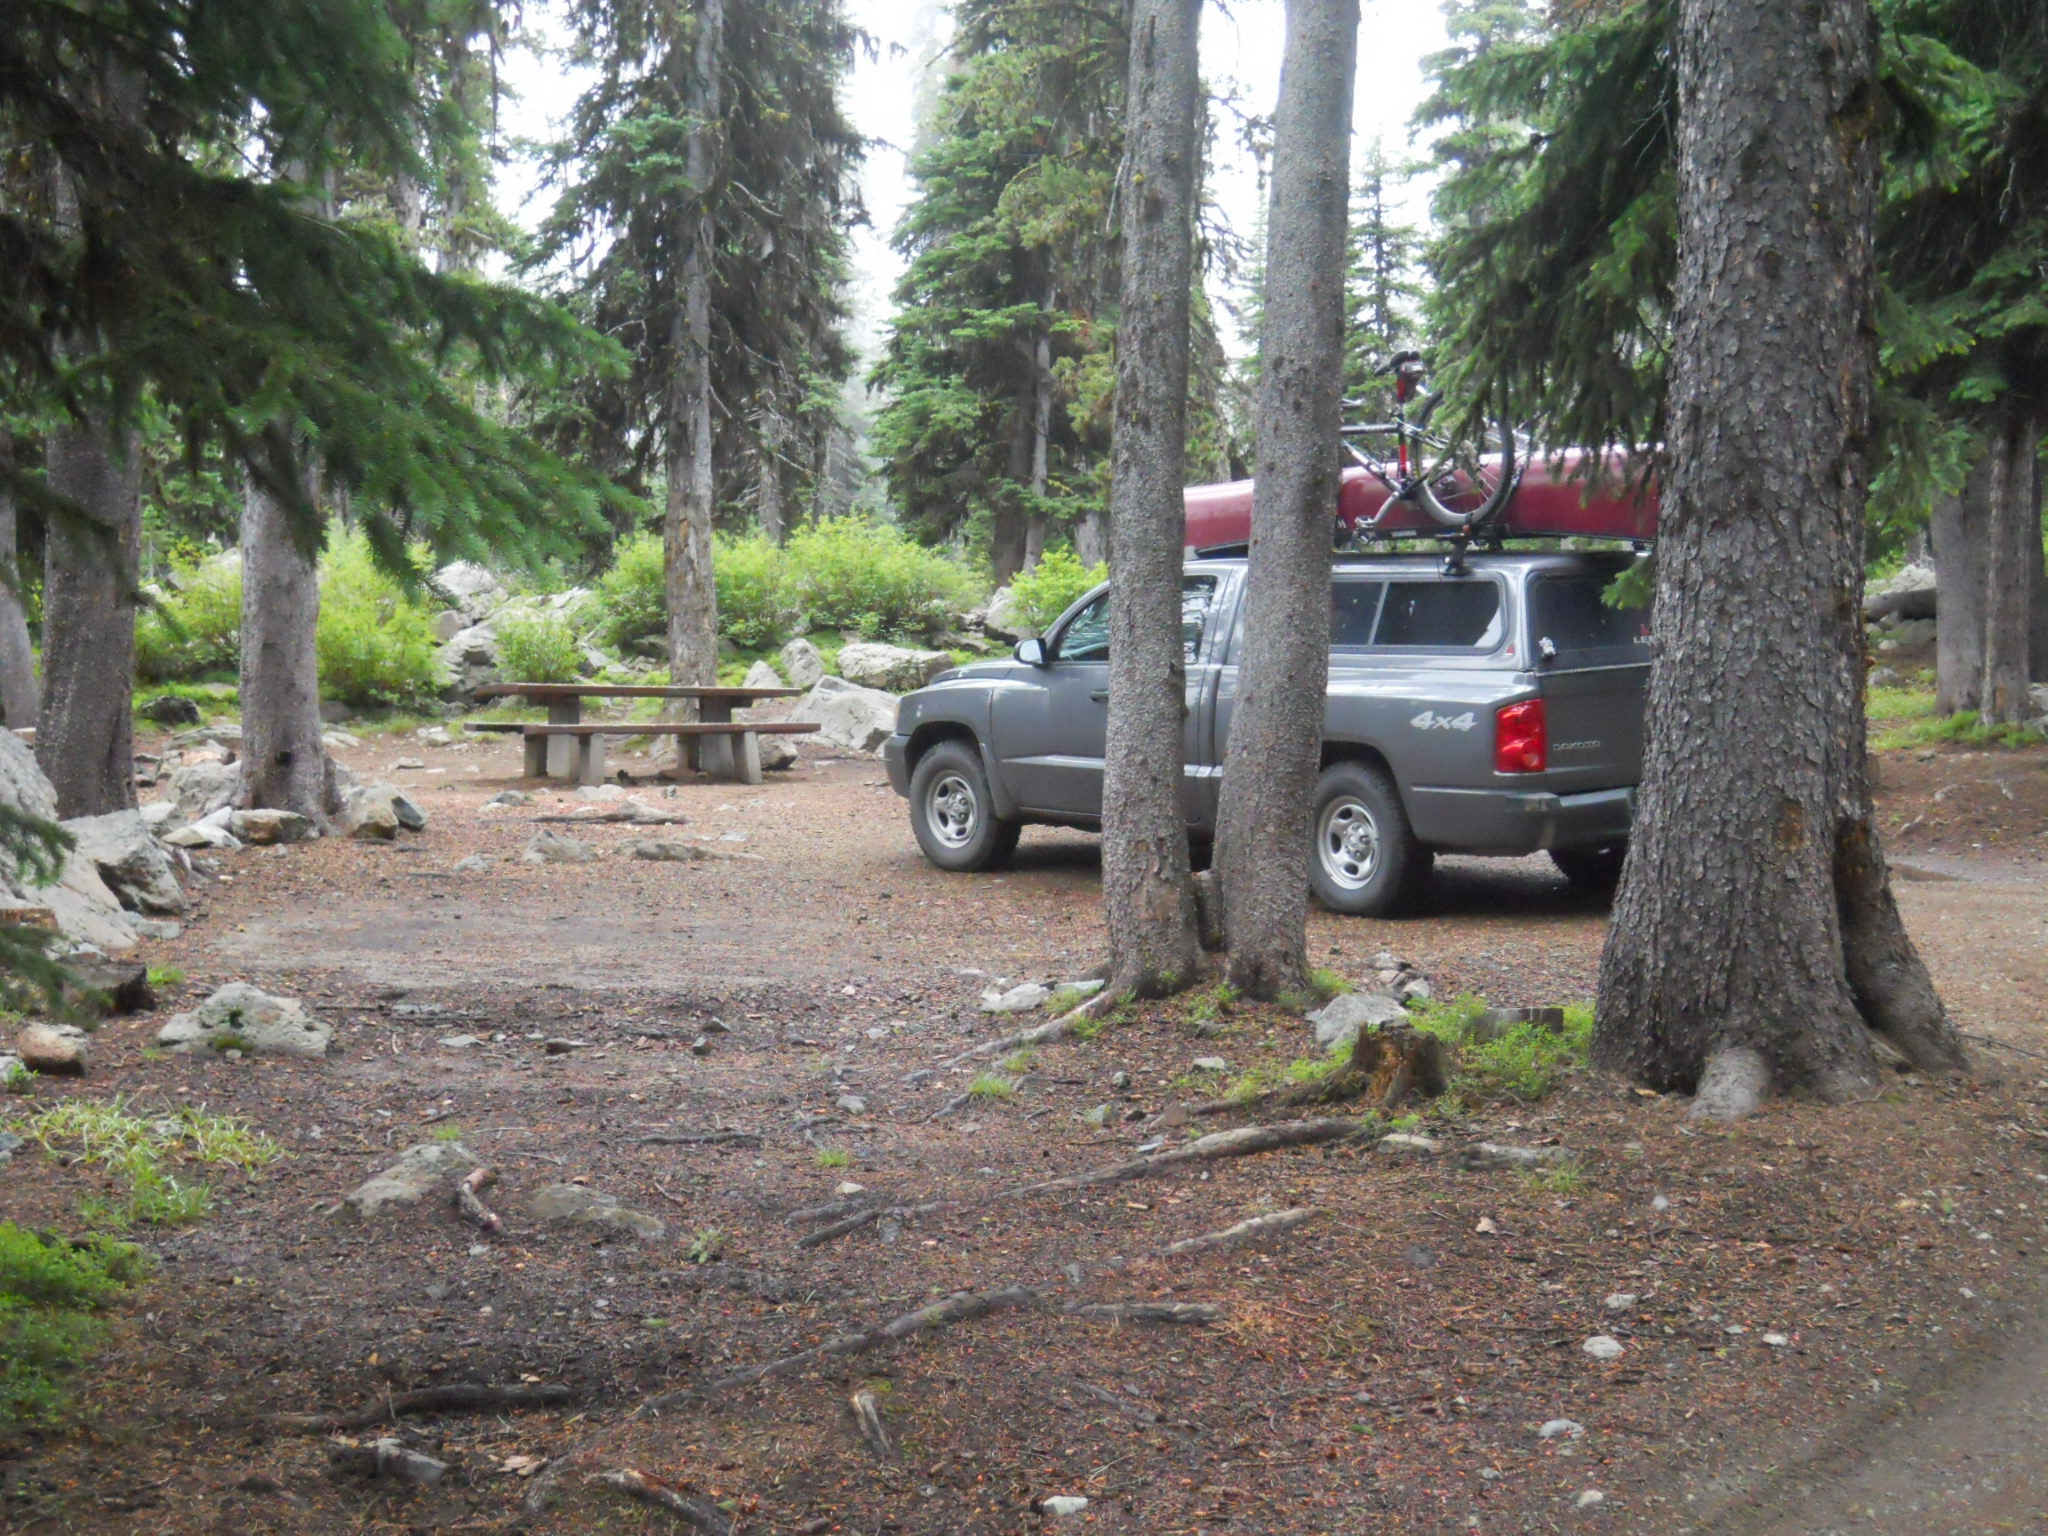 Truck with a canoe on top parked in a forested campsite